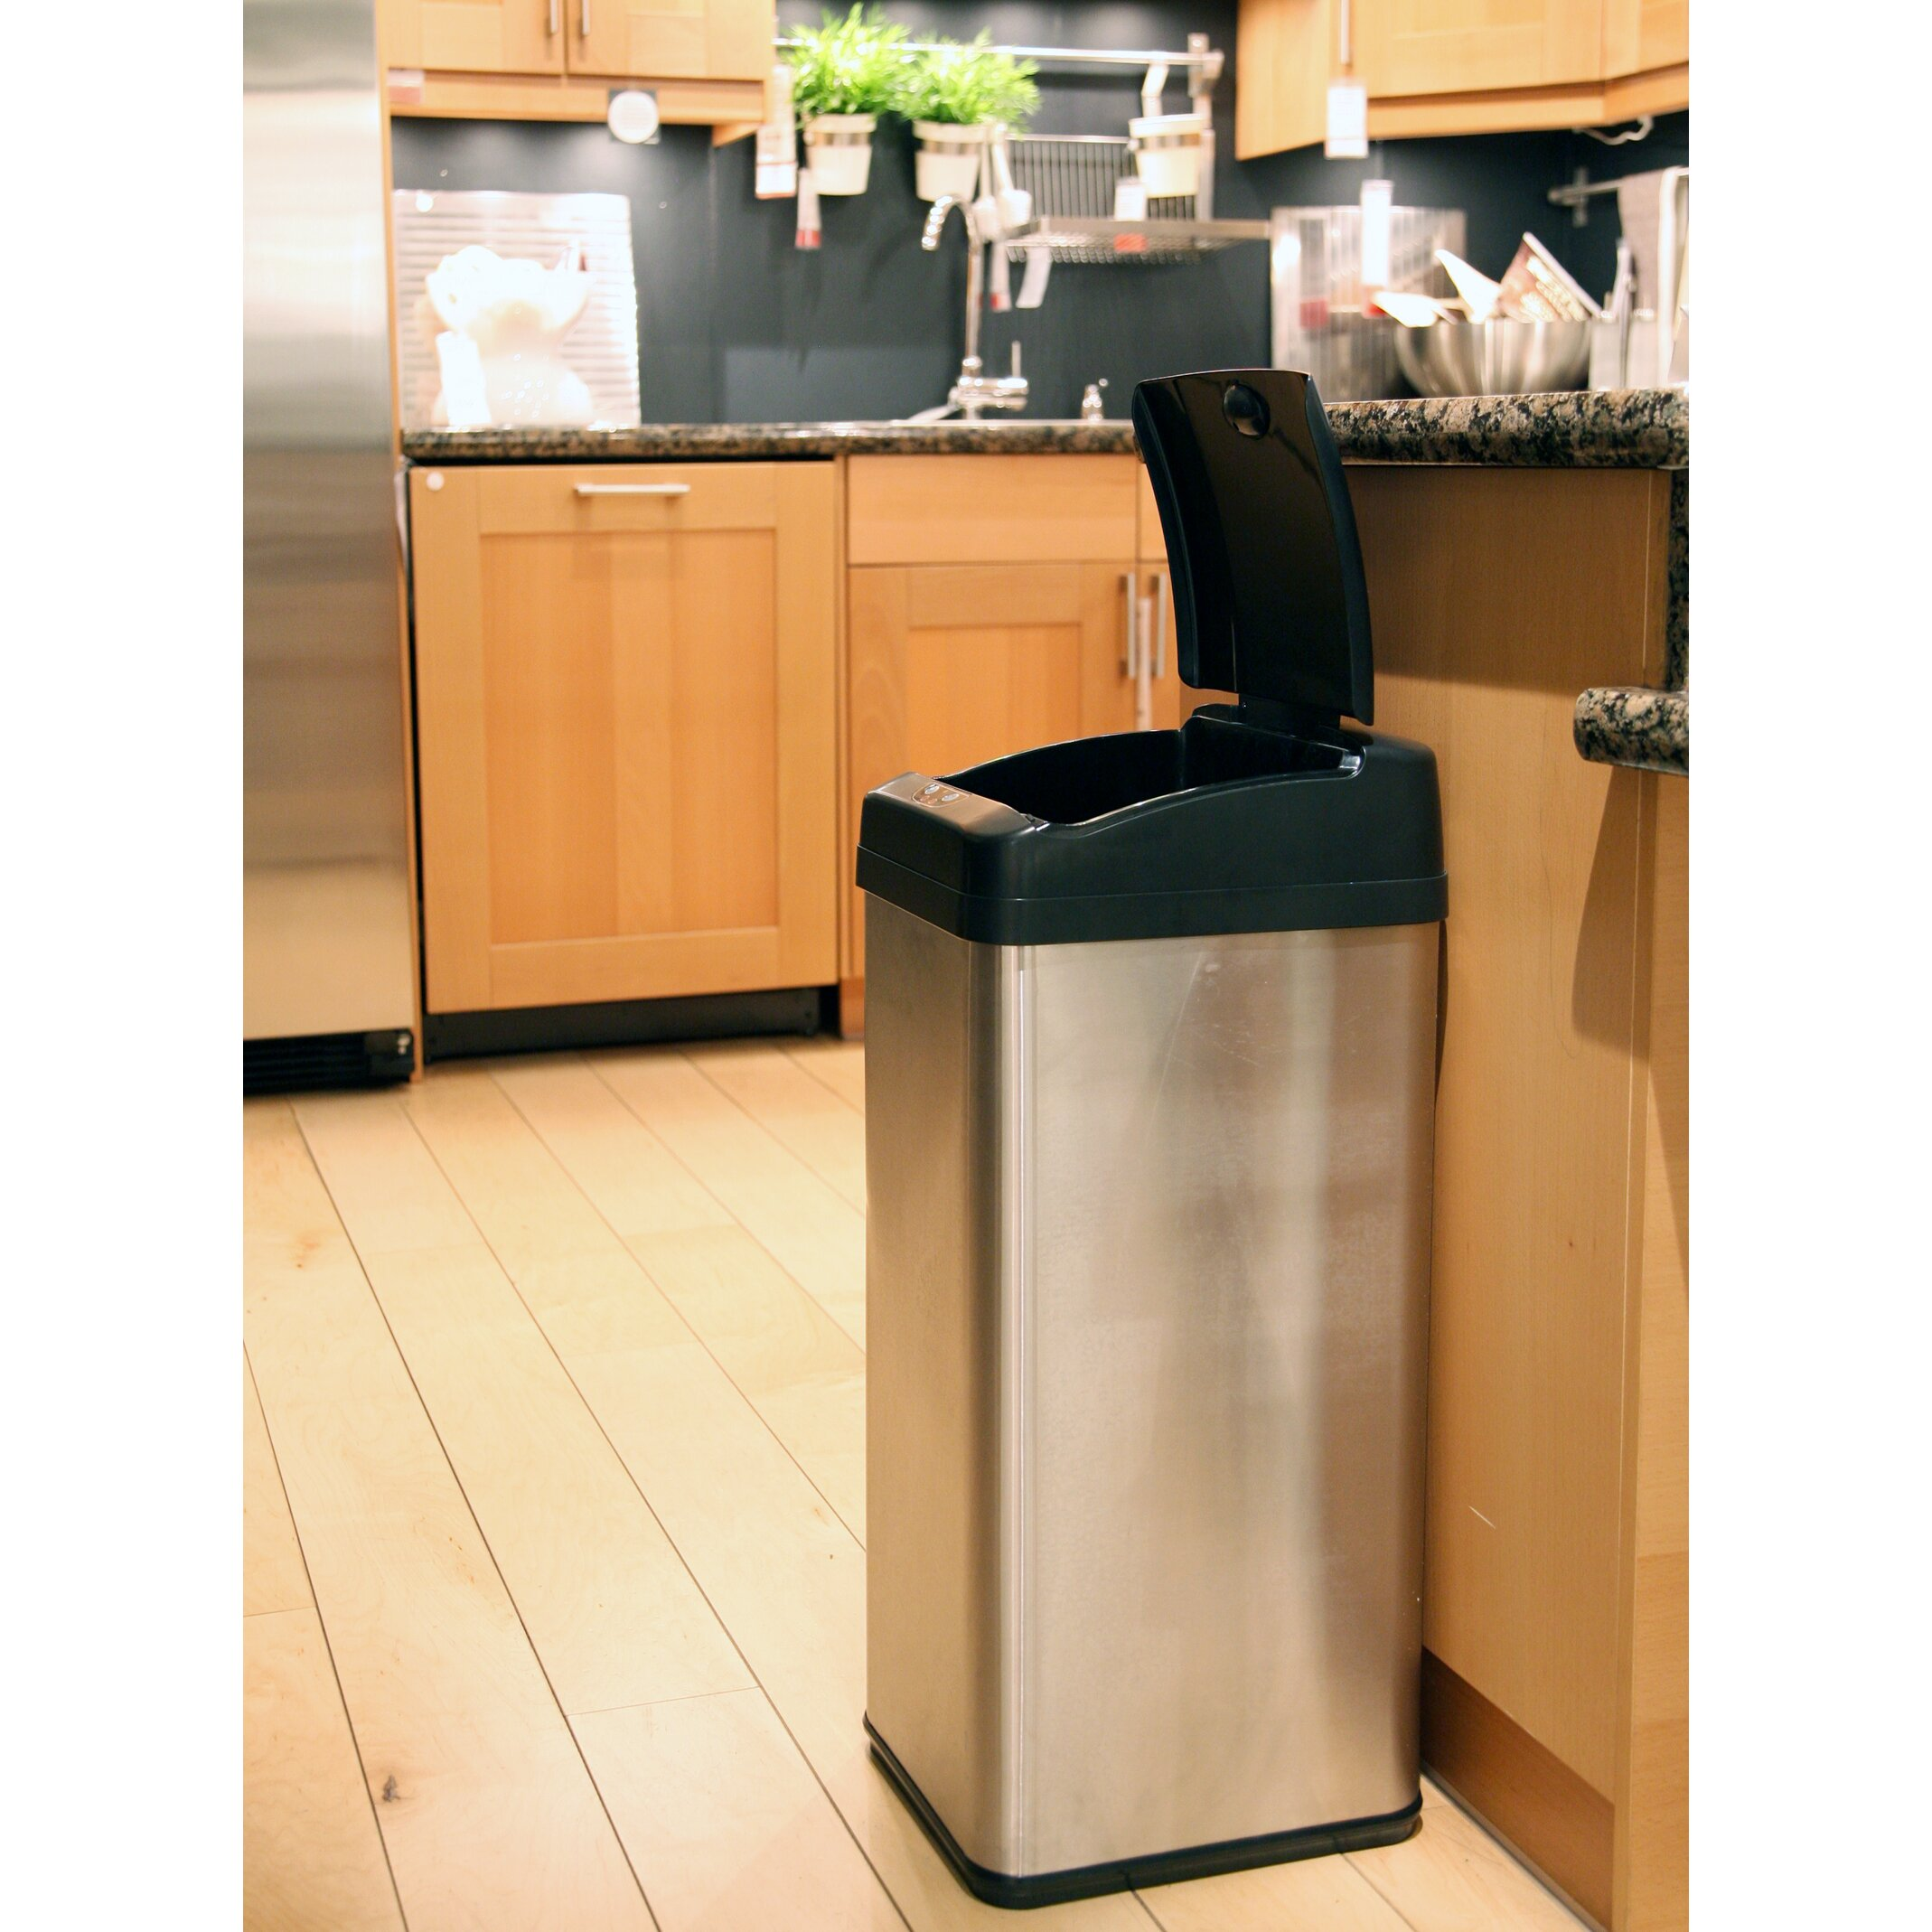 Itouchless Touchless 13 Gallon Motion Sensor Metal Trash Can Itouchless  Touchless 13 Gallon Motion Sensor